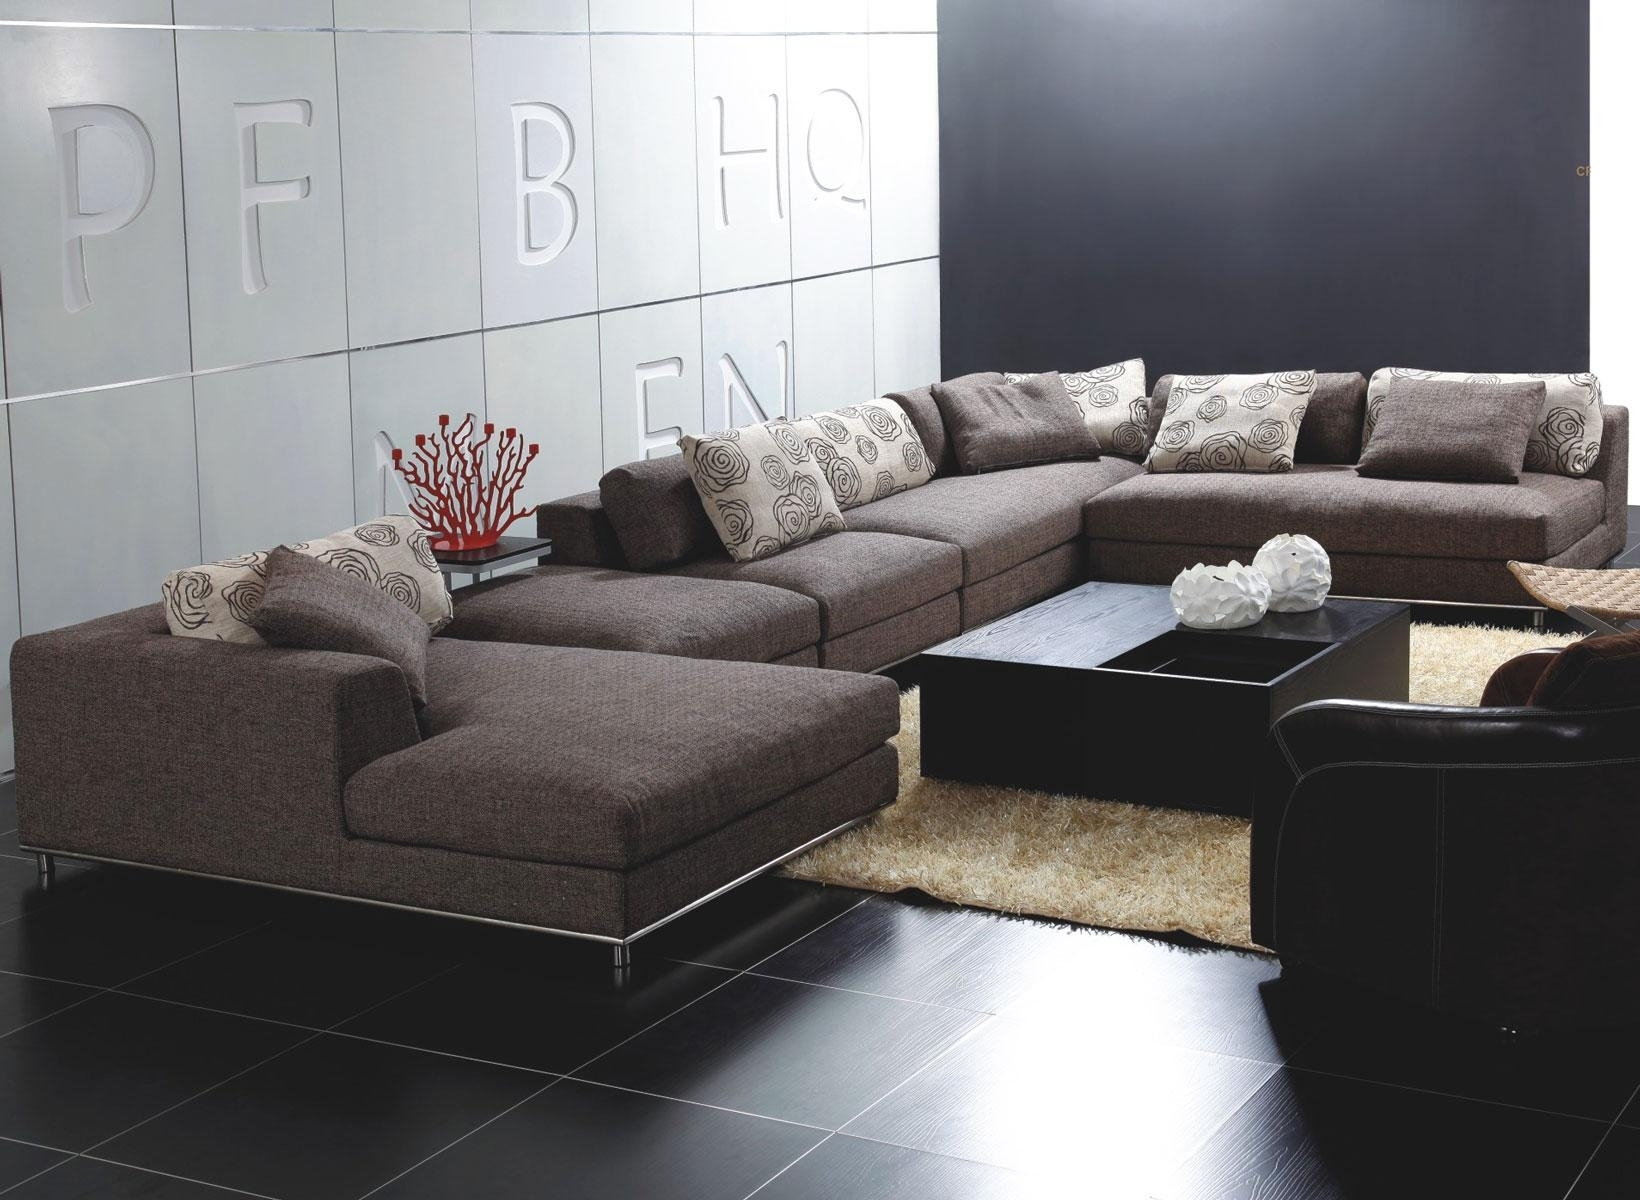 Inspirational Sectional Sofa Sales 24 On Sectional Sofas North In Sectional Sofas In North Carolina (View 10 of 10)